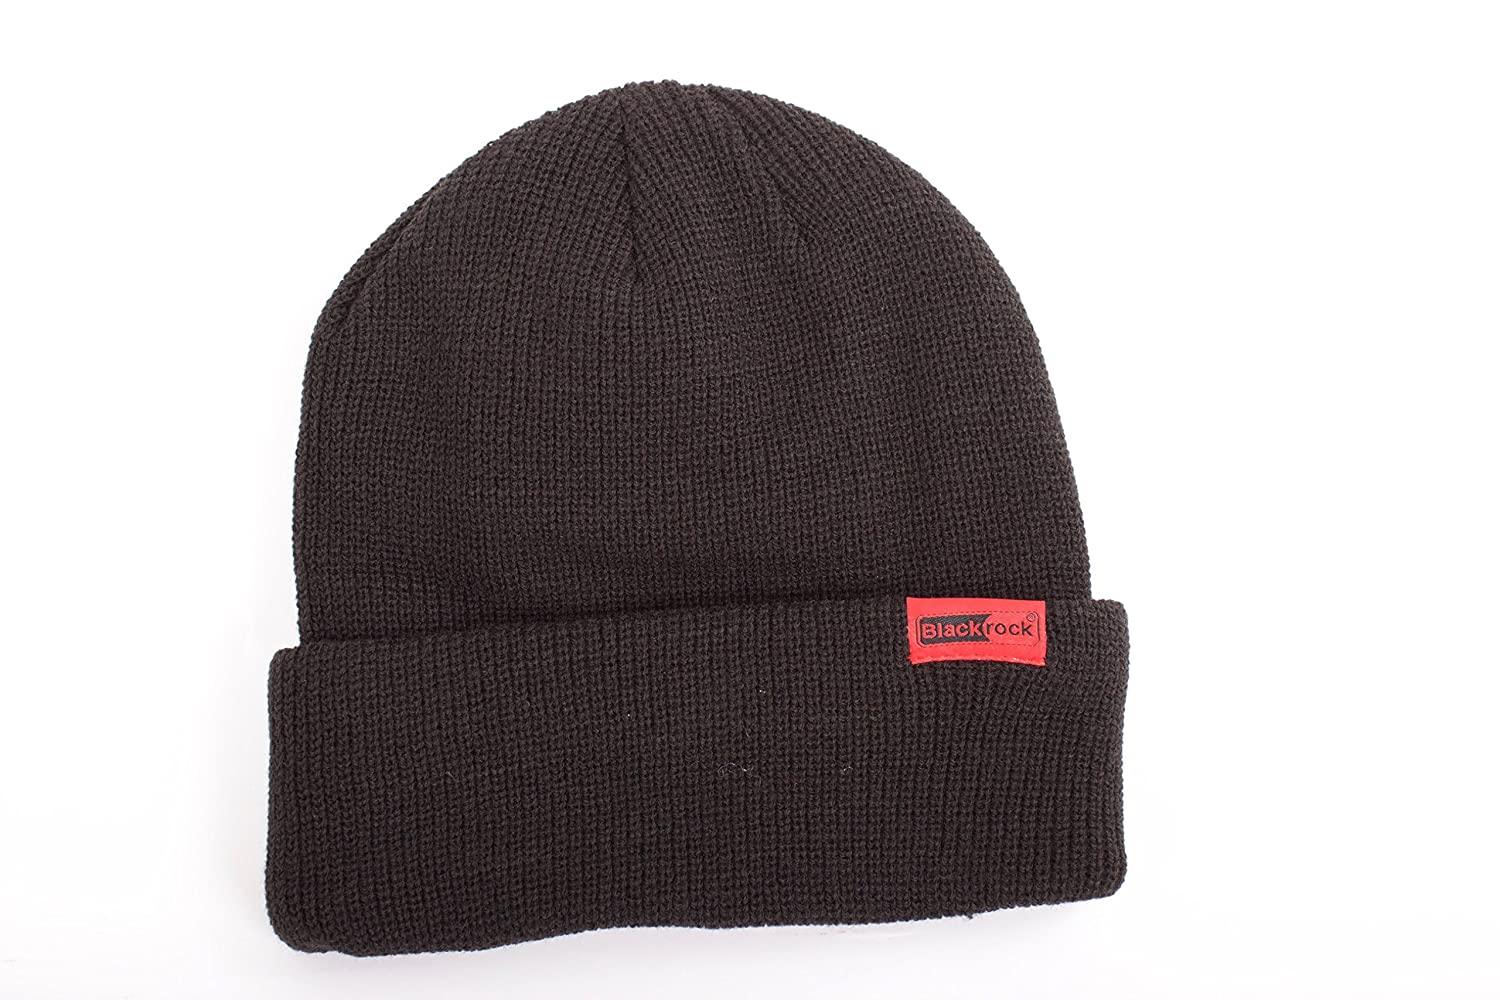 1761a5f29 Blackrock Men's Black Heat Thermal Insulated Hat